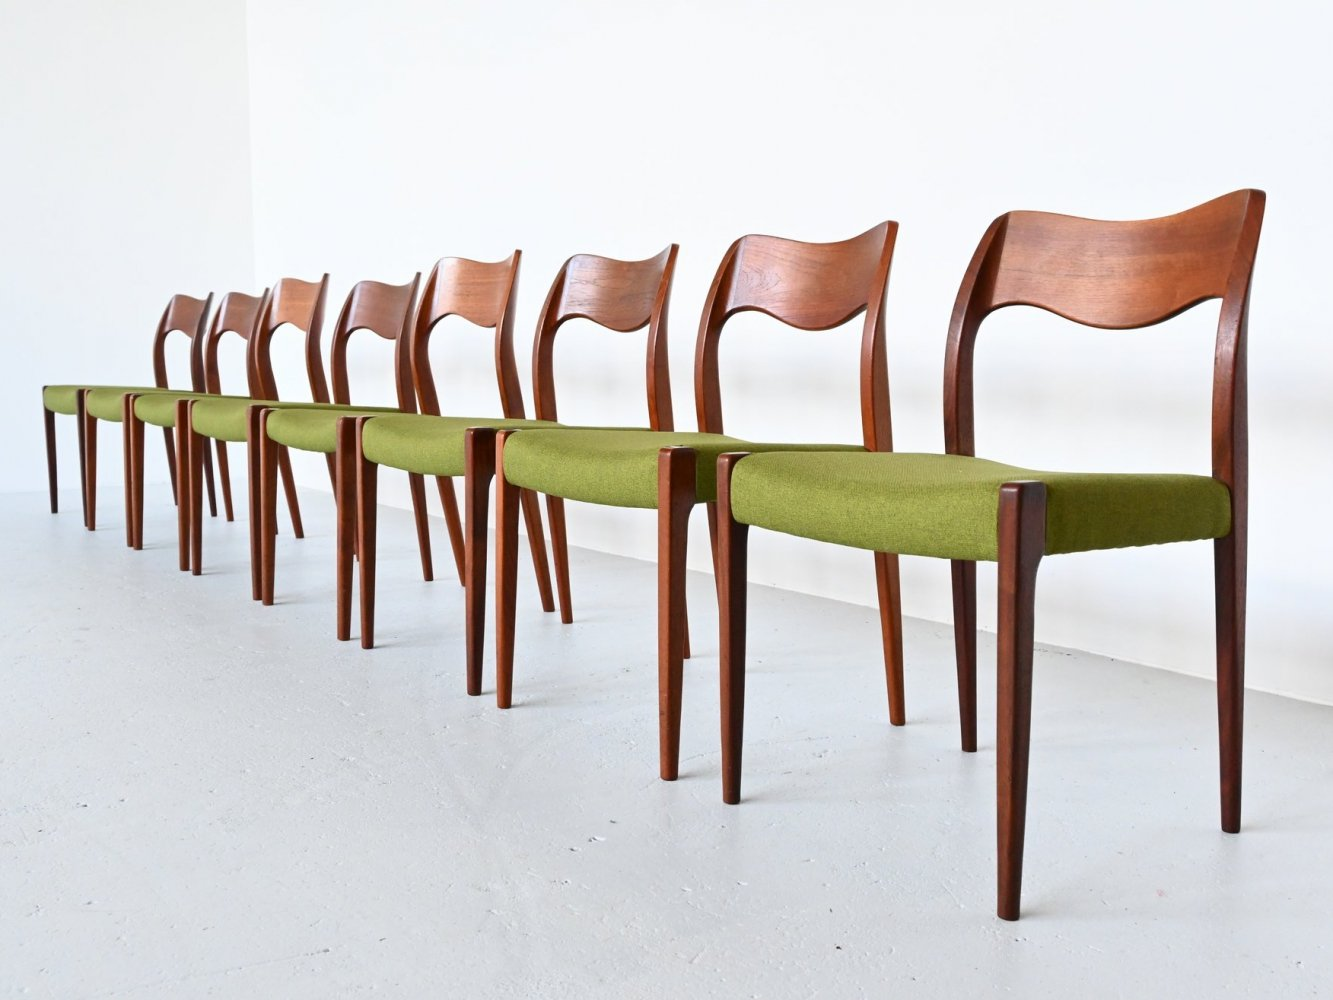 Set of 8 Niels O. Moller model 71 dining chairs, Denmark 1951